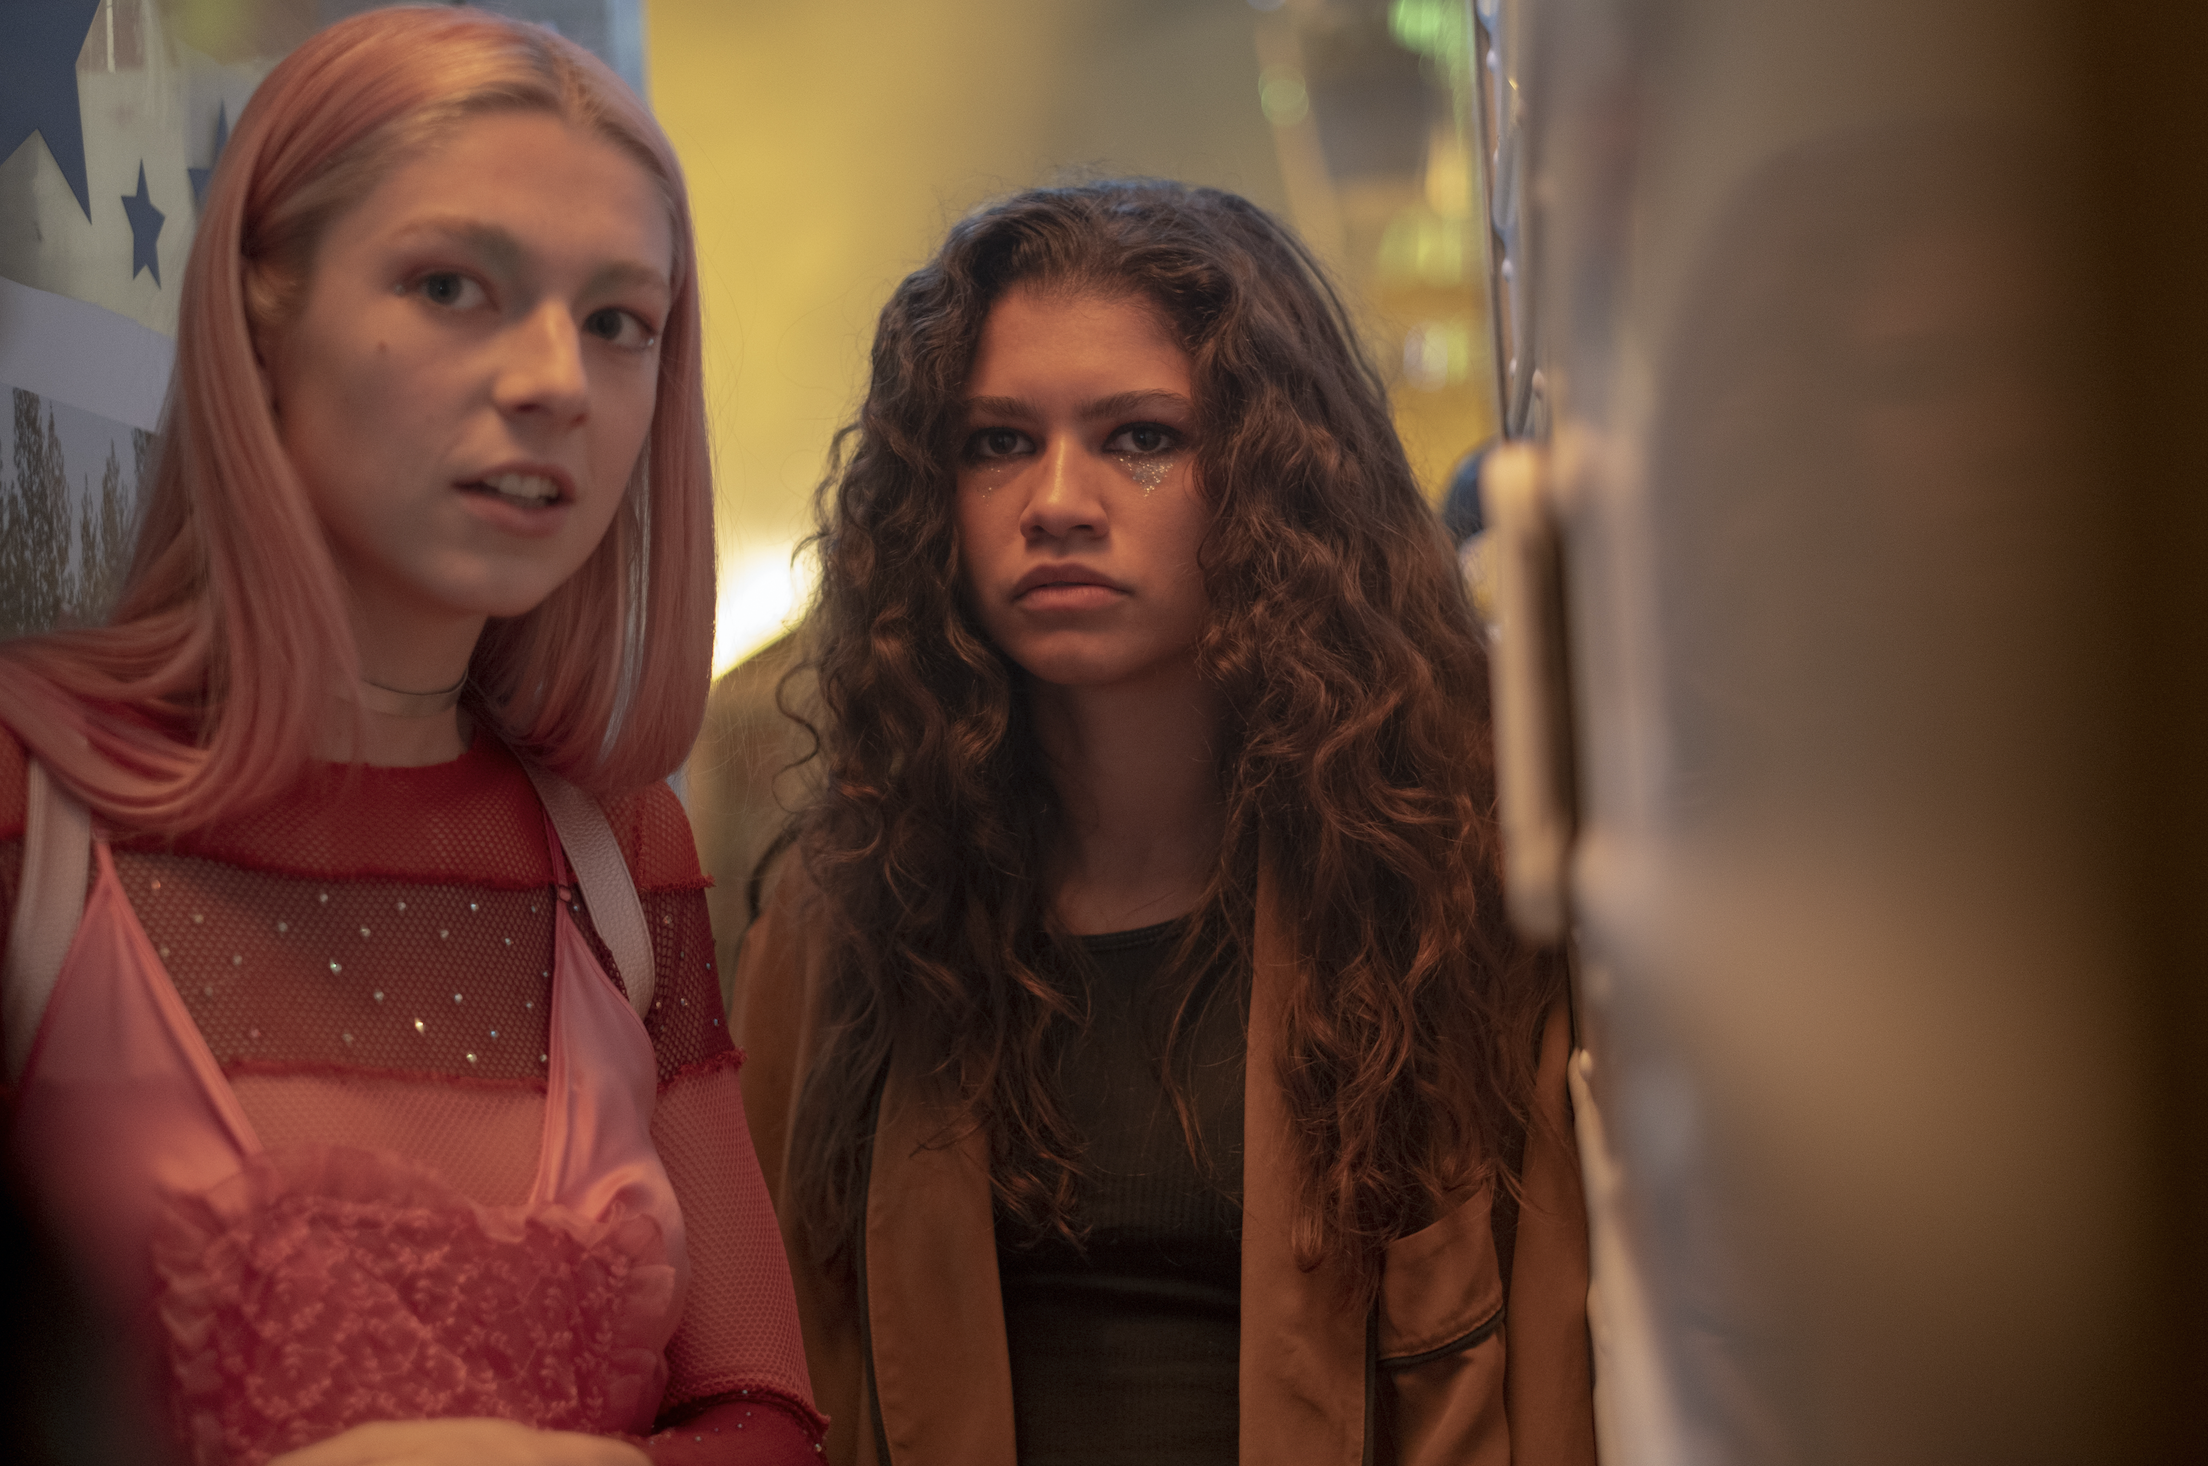 Here's What You Should Watch After 'Euphoria,' Based on the Character You're Obsessed With